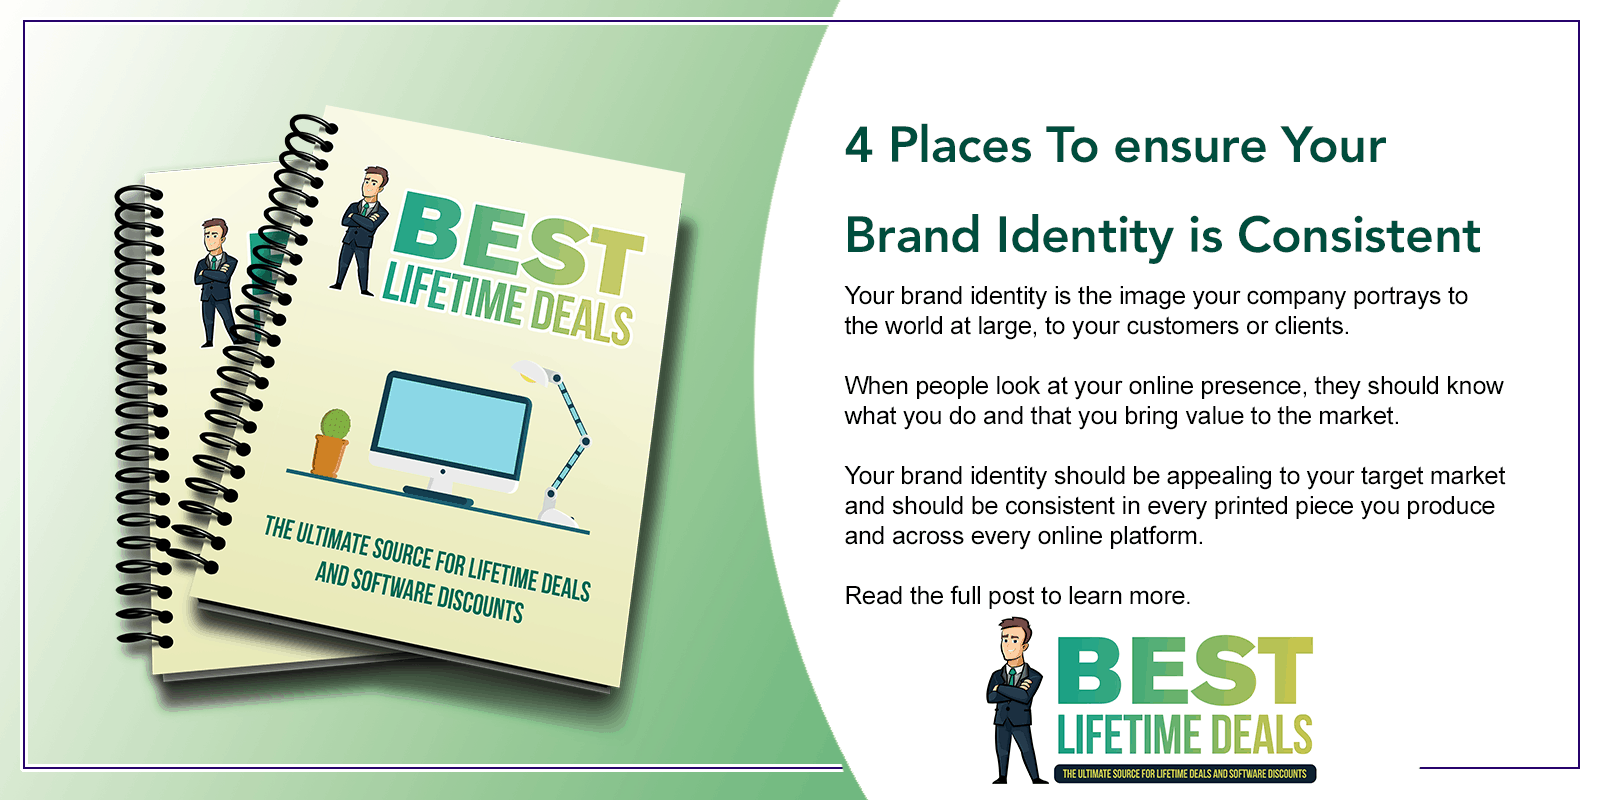 4 Places To ensure Your Brand Identity is Consistent Featured Image